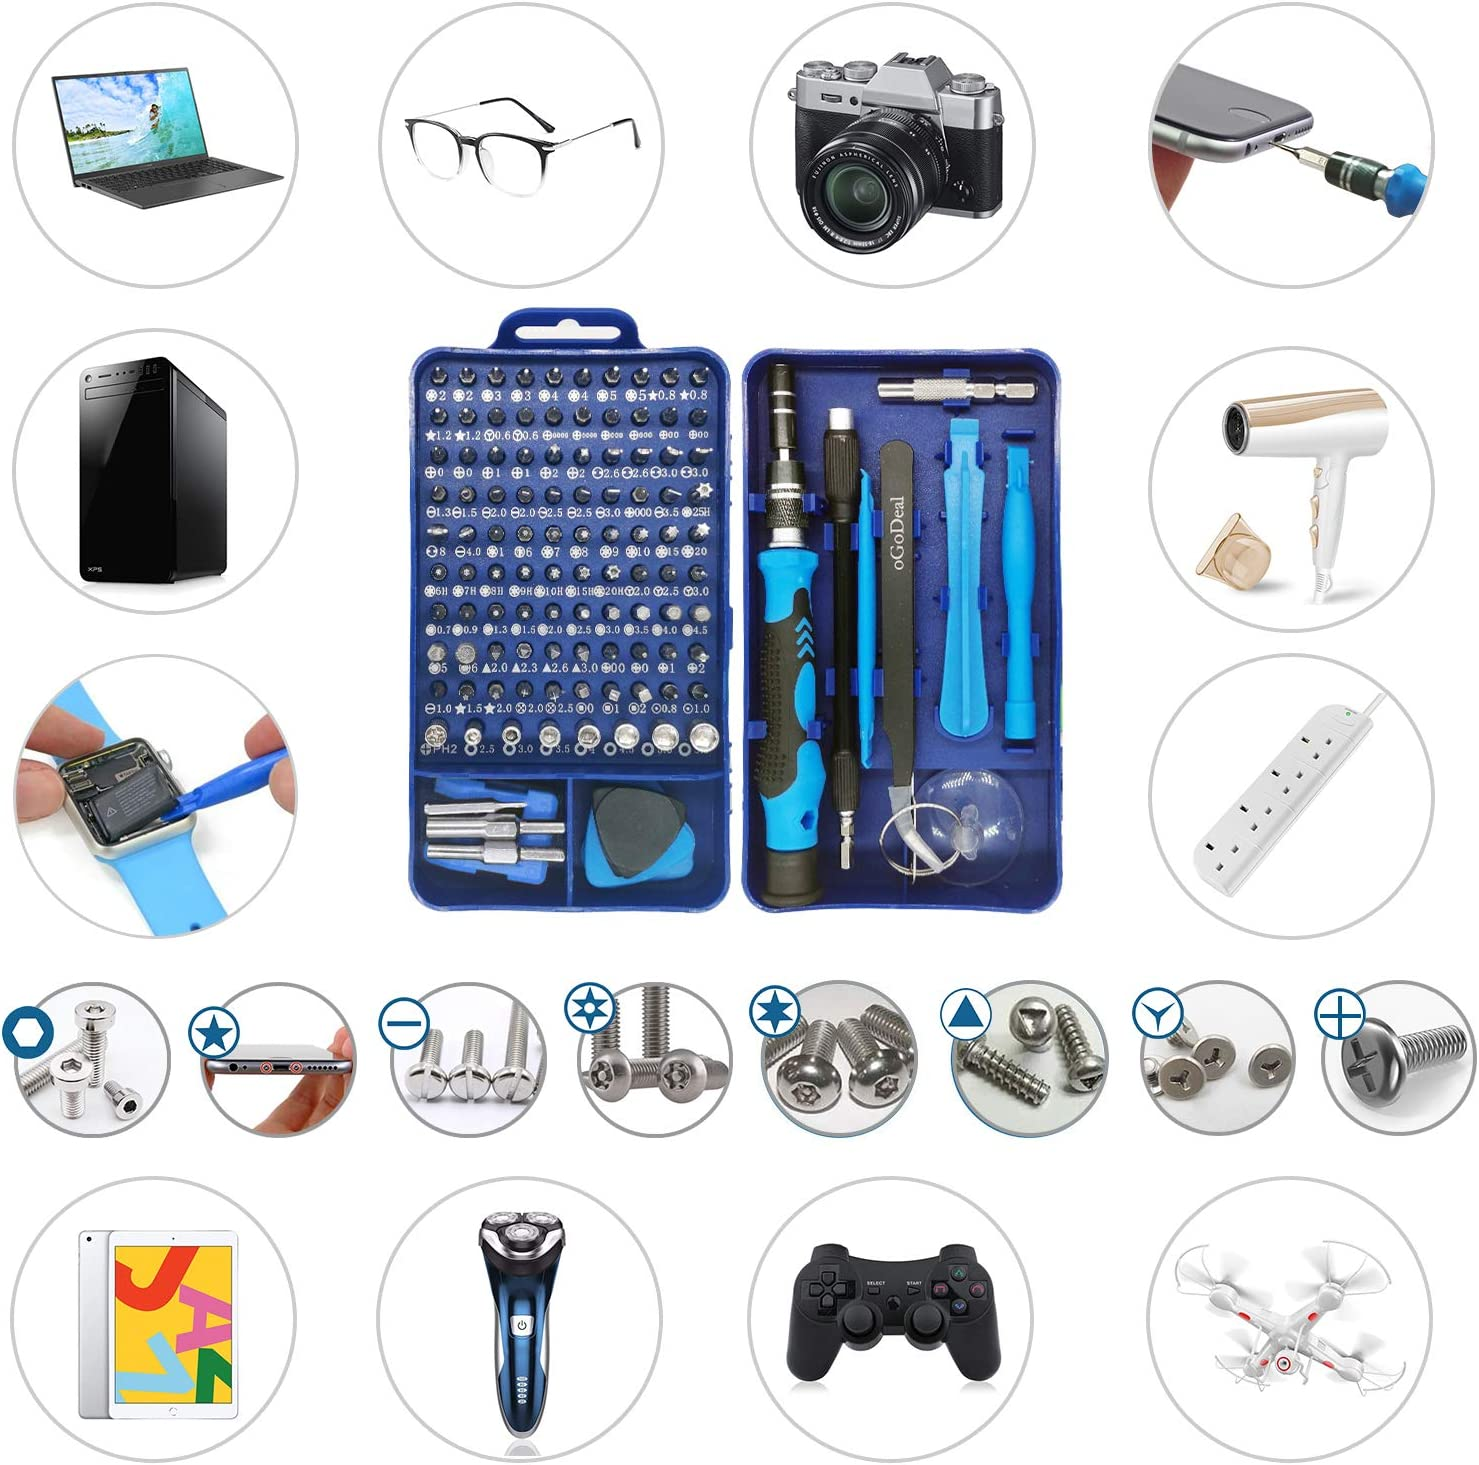 Eyeglasses Laptop oGoDeal 155 in 1 Professional Electronic Repair Tool Kit for Computer PC iPhone Tablet,PS3,PS4,Xbox,Macbook,Camera,Watch,Toy,Jewelers,Drone Purple